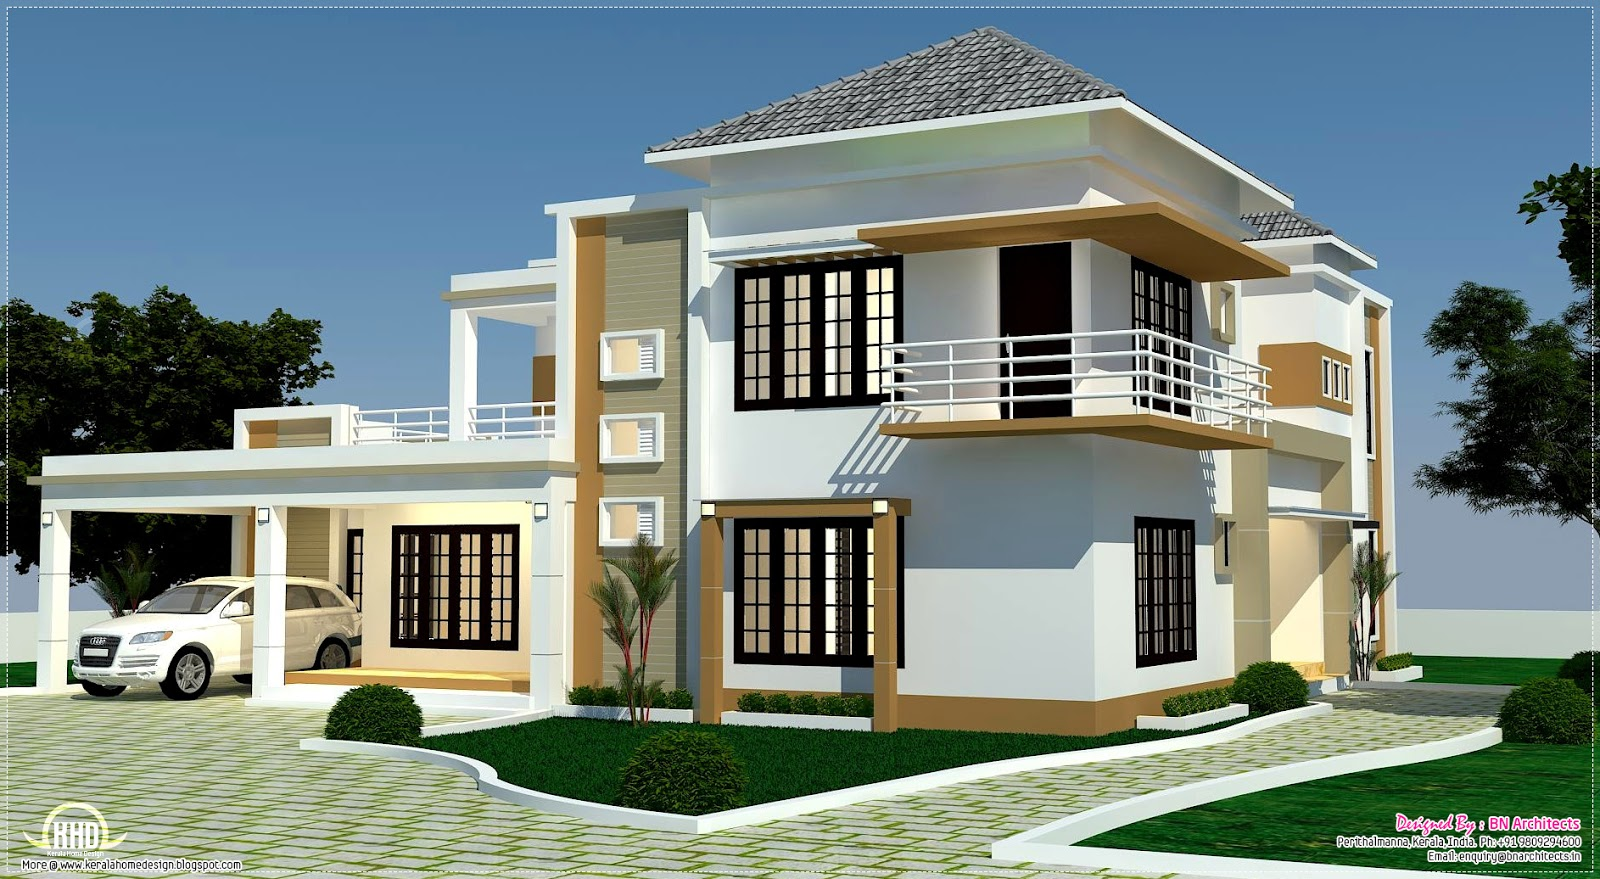 Floor plan 3d views and interiors of 4 bedroom villa House plan 3d view